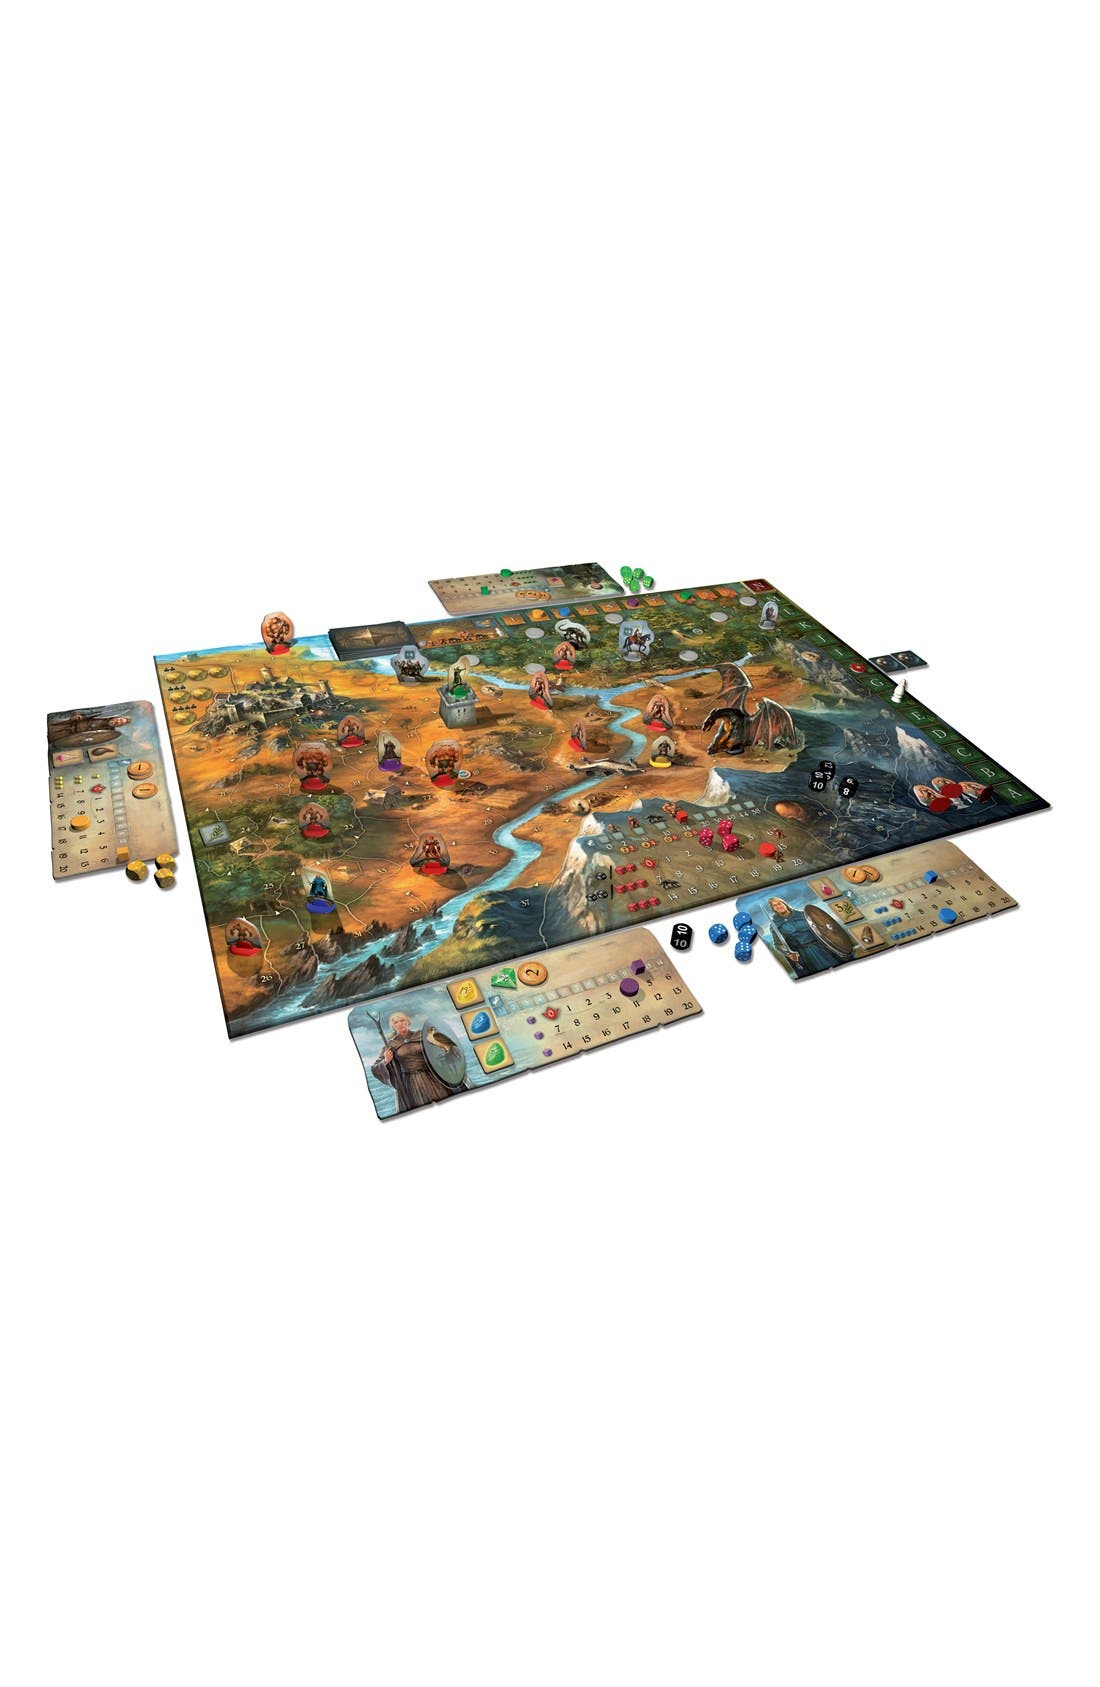 'Legends of Andor' Base Board Game,                             Alternate thumbnail 3, color,                             200